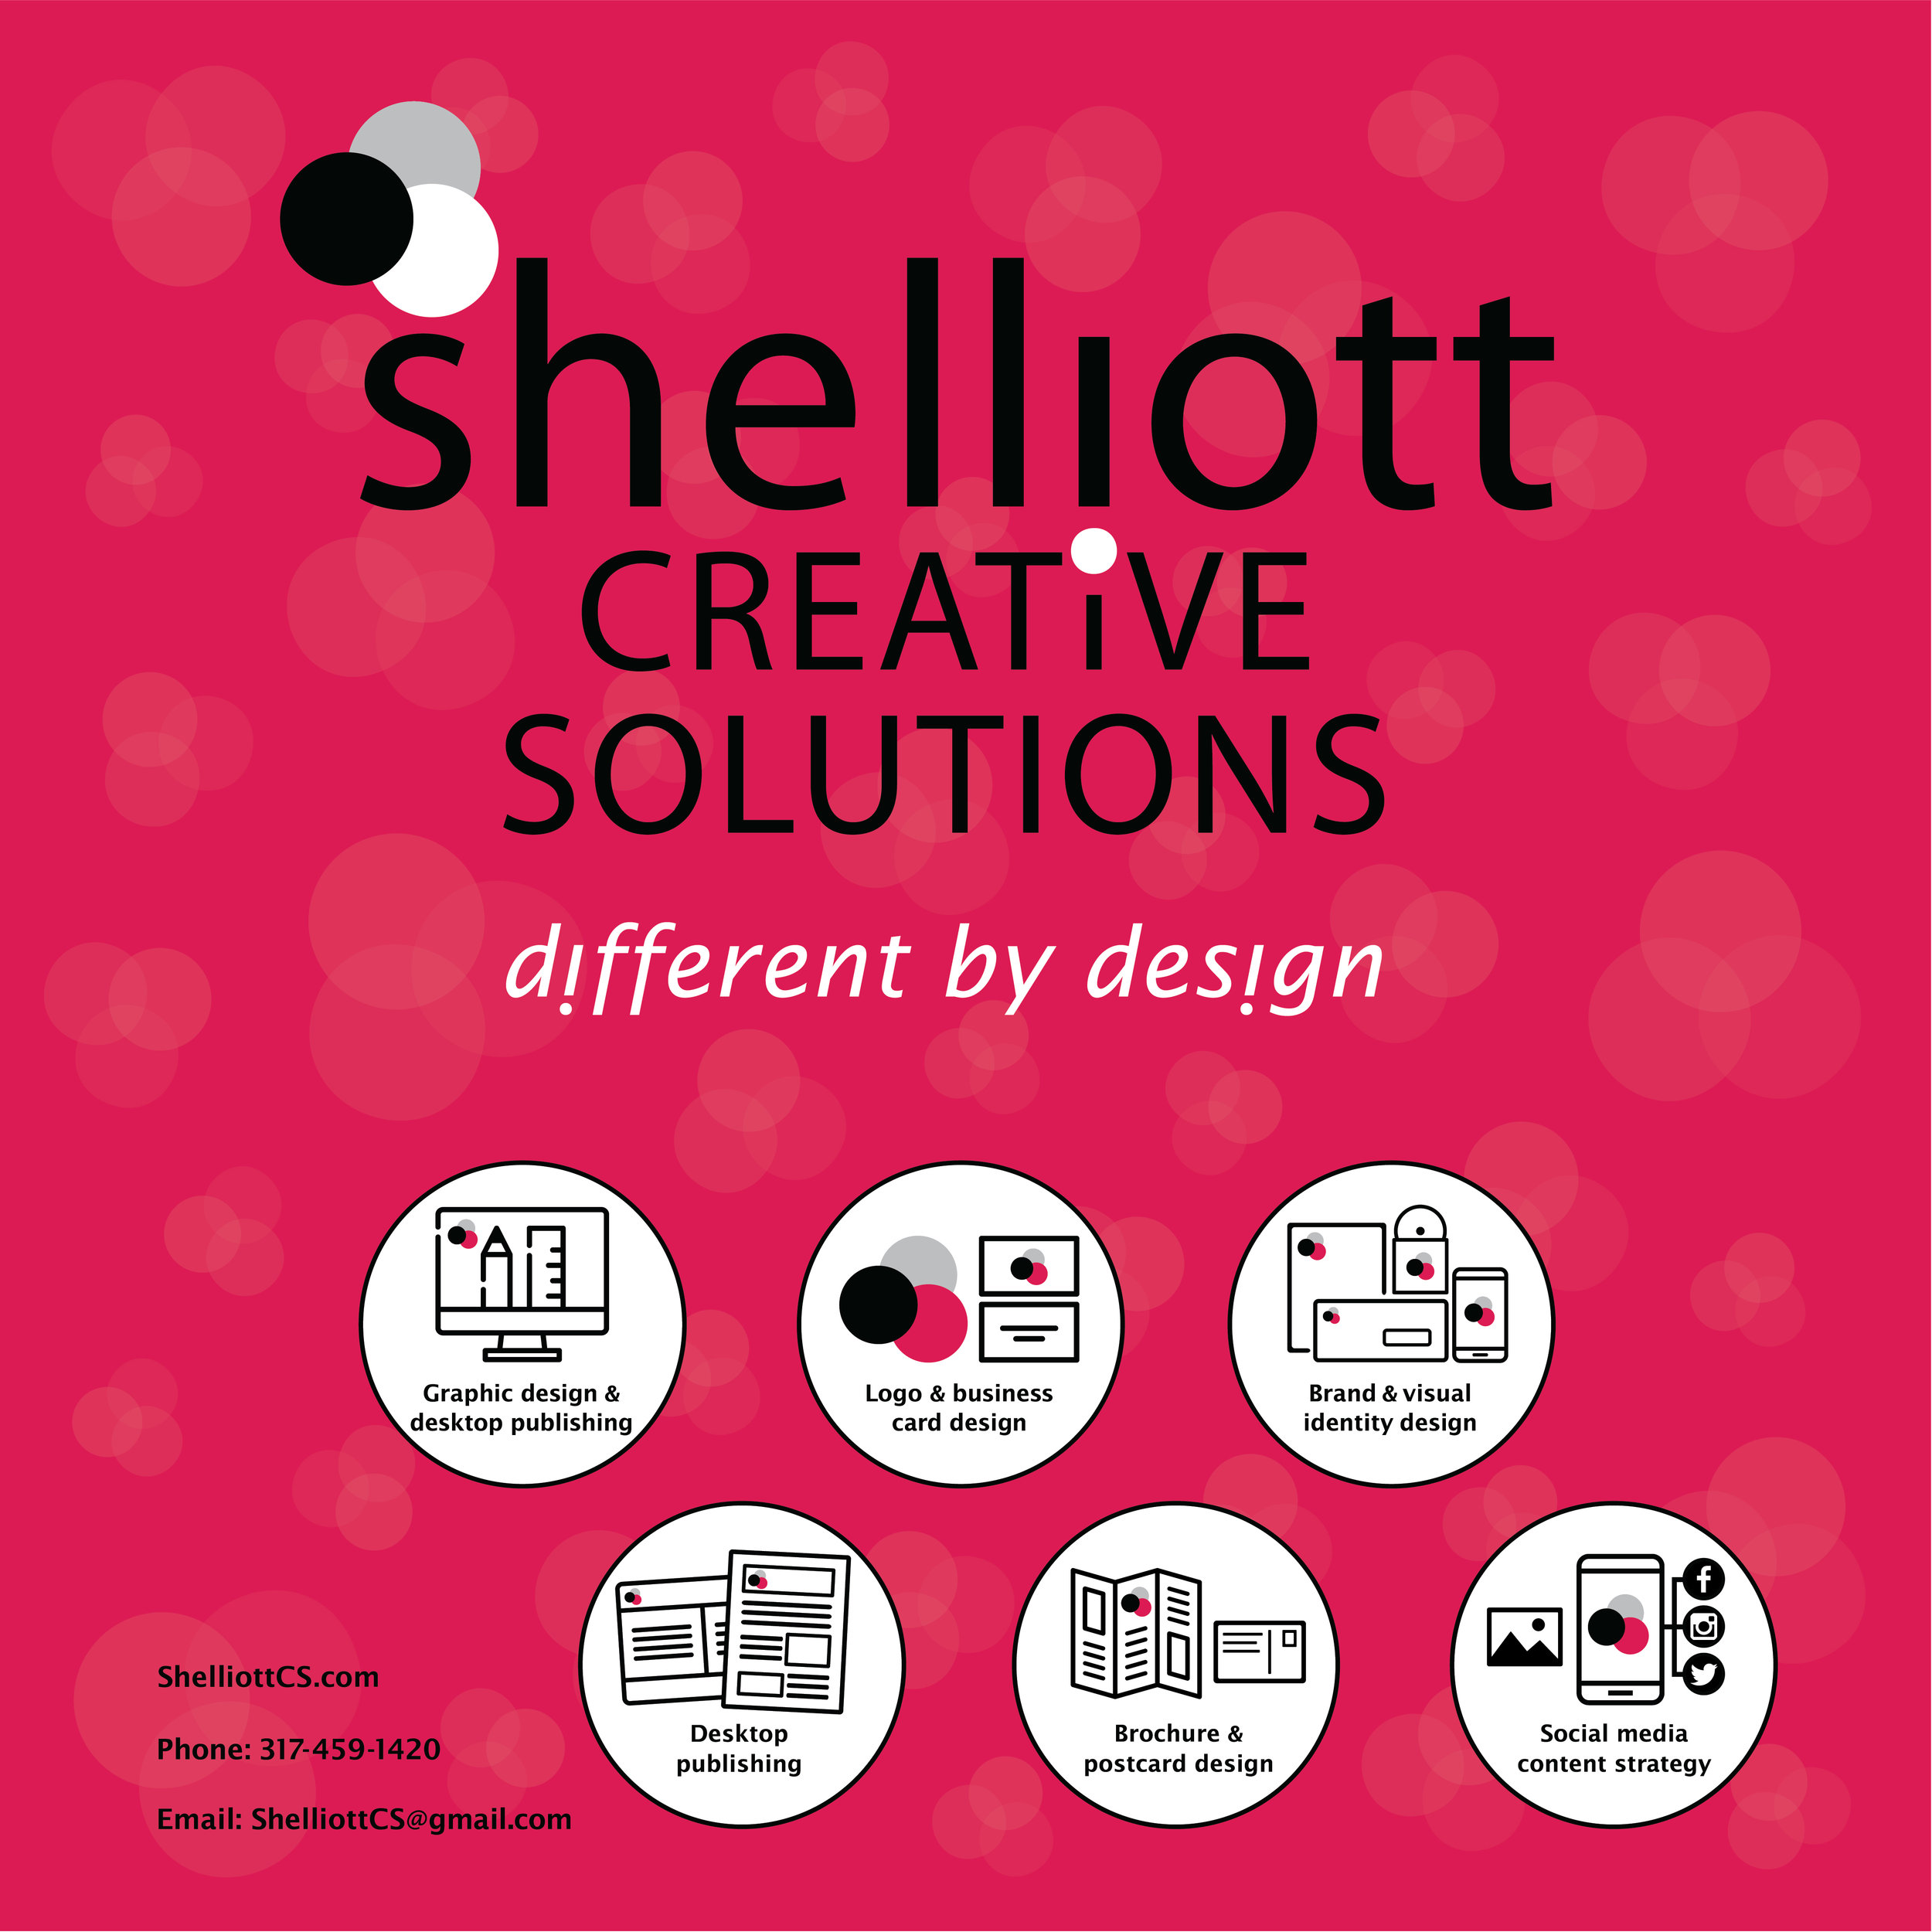 i love getting graphic - shelliott is awesome! thanks! - Click link below.